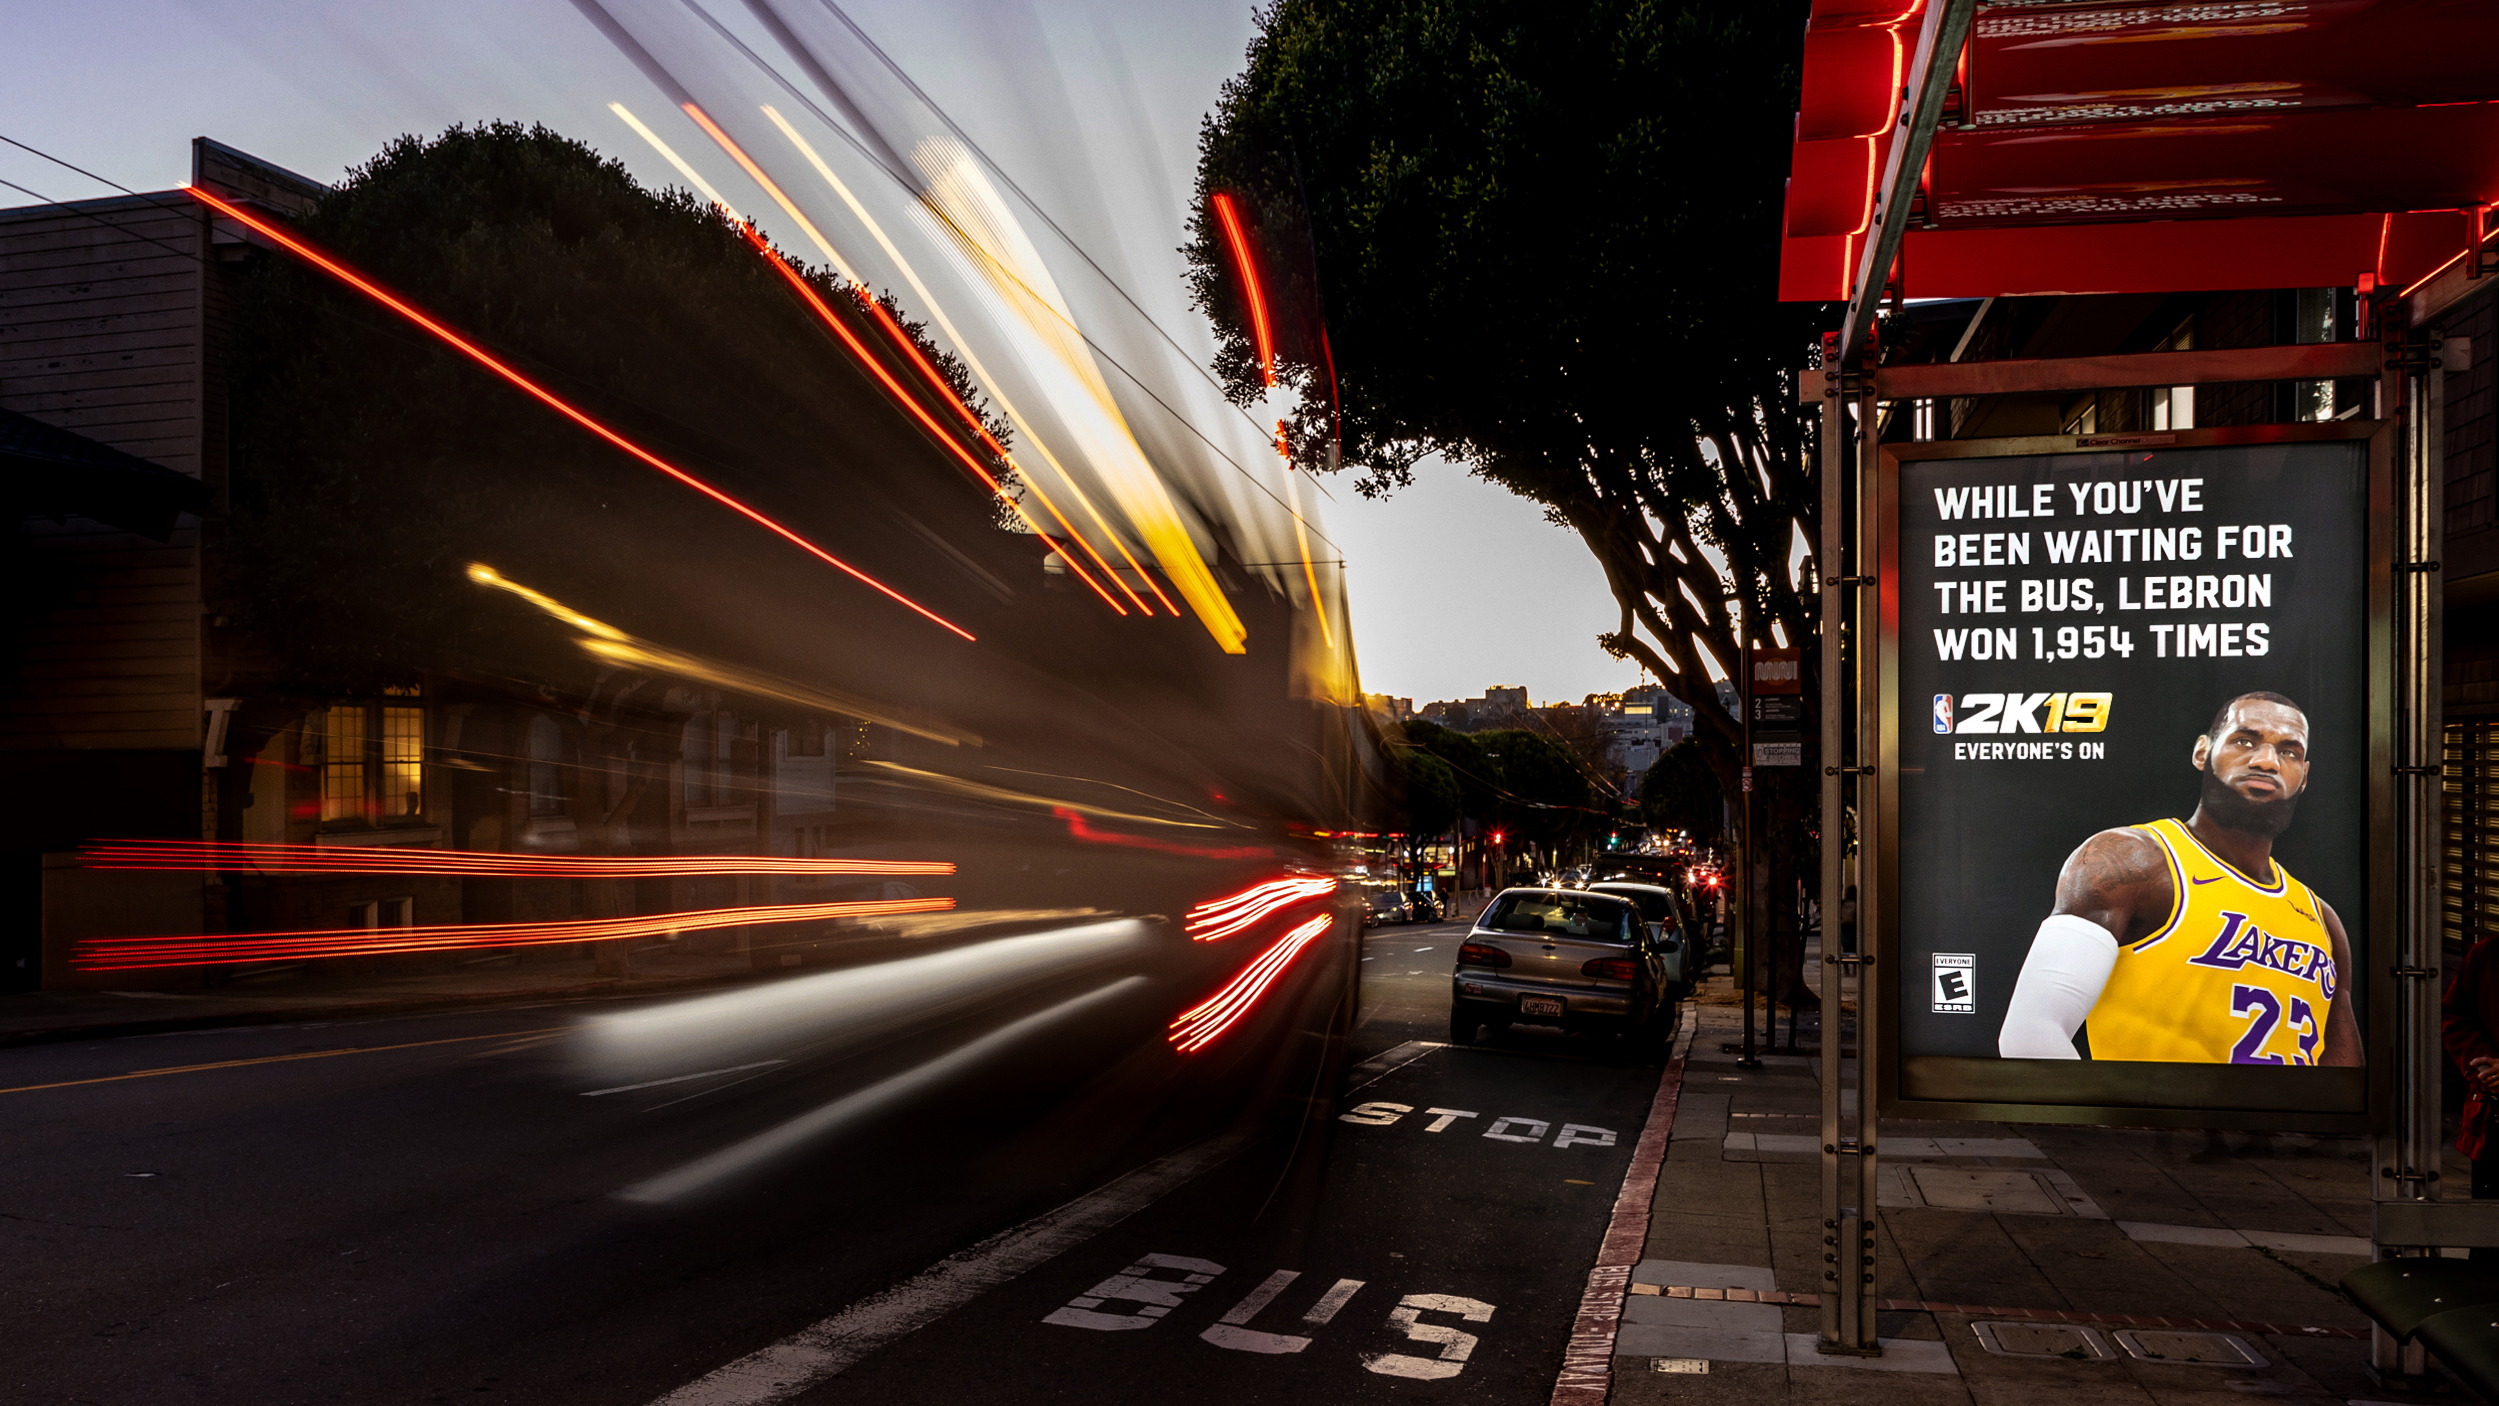 SF_BUS_SHELTER_01.jpg